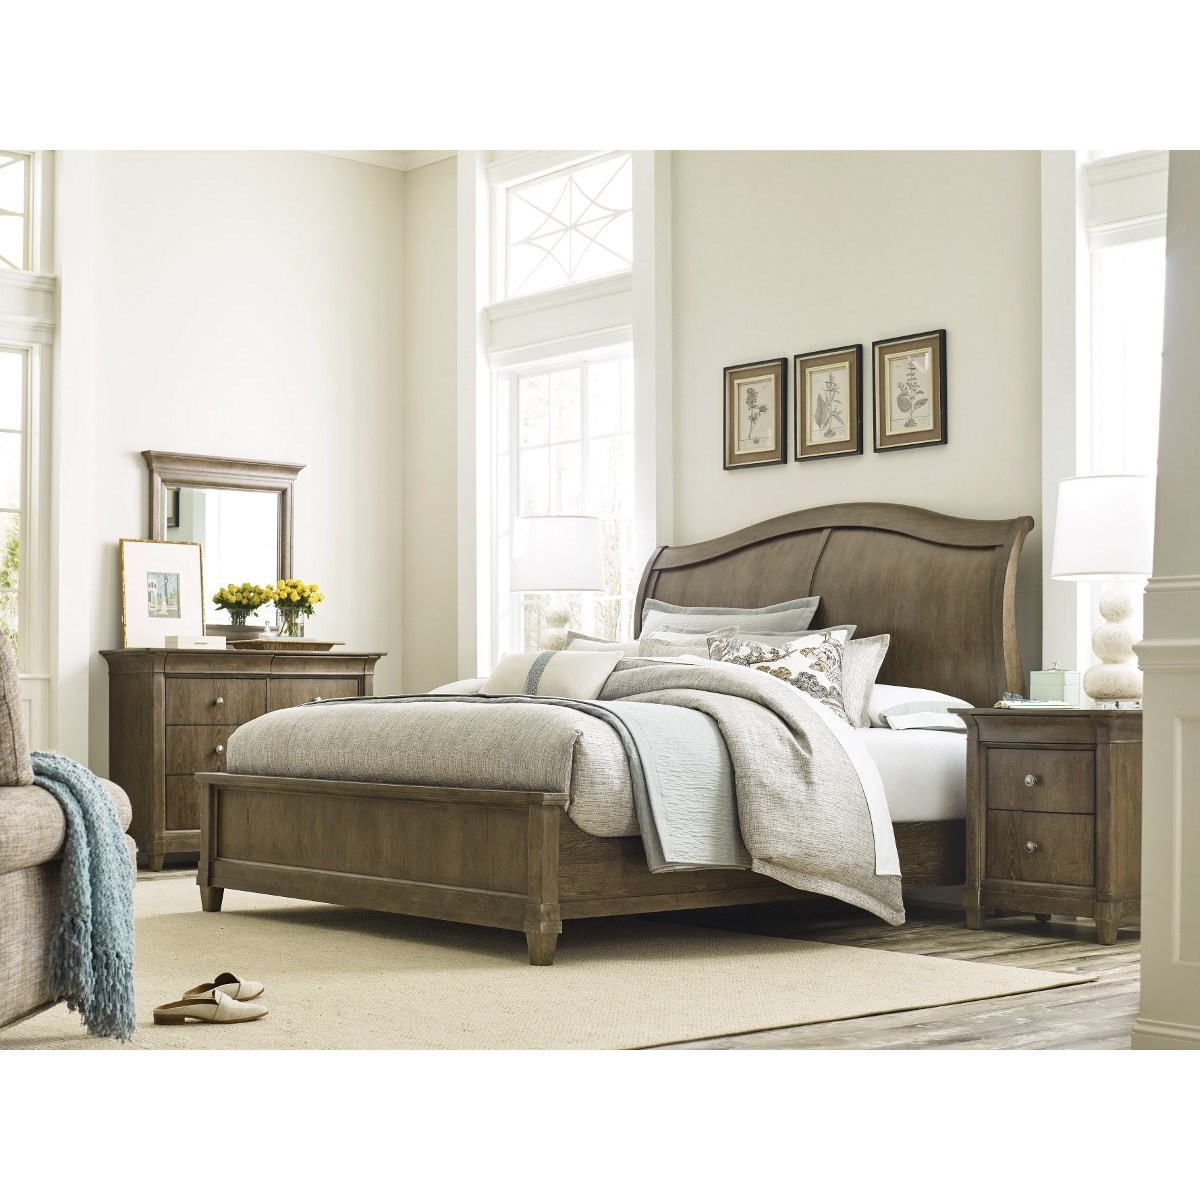 Anson California King Bedroom Group by American Drew at Northeast Factory Direct